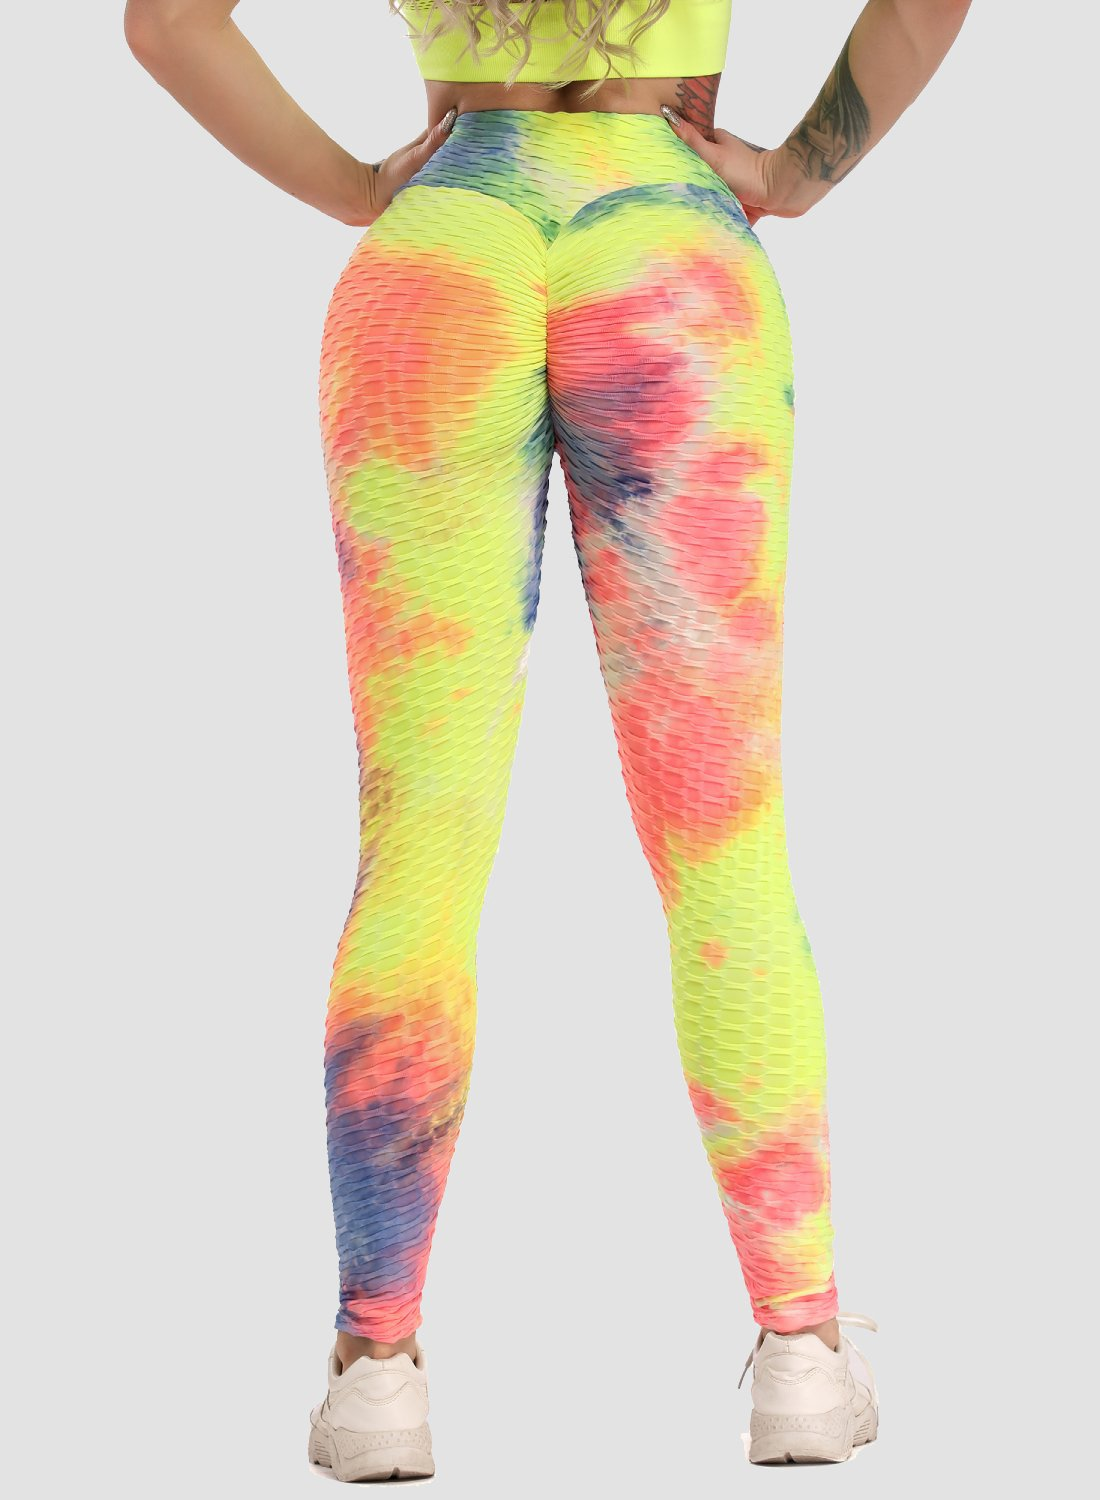 Women's Tie-dyed Textured Leggings-JustFittoo